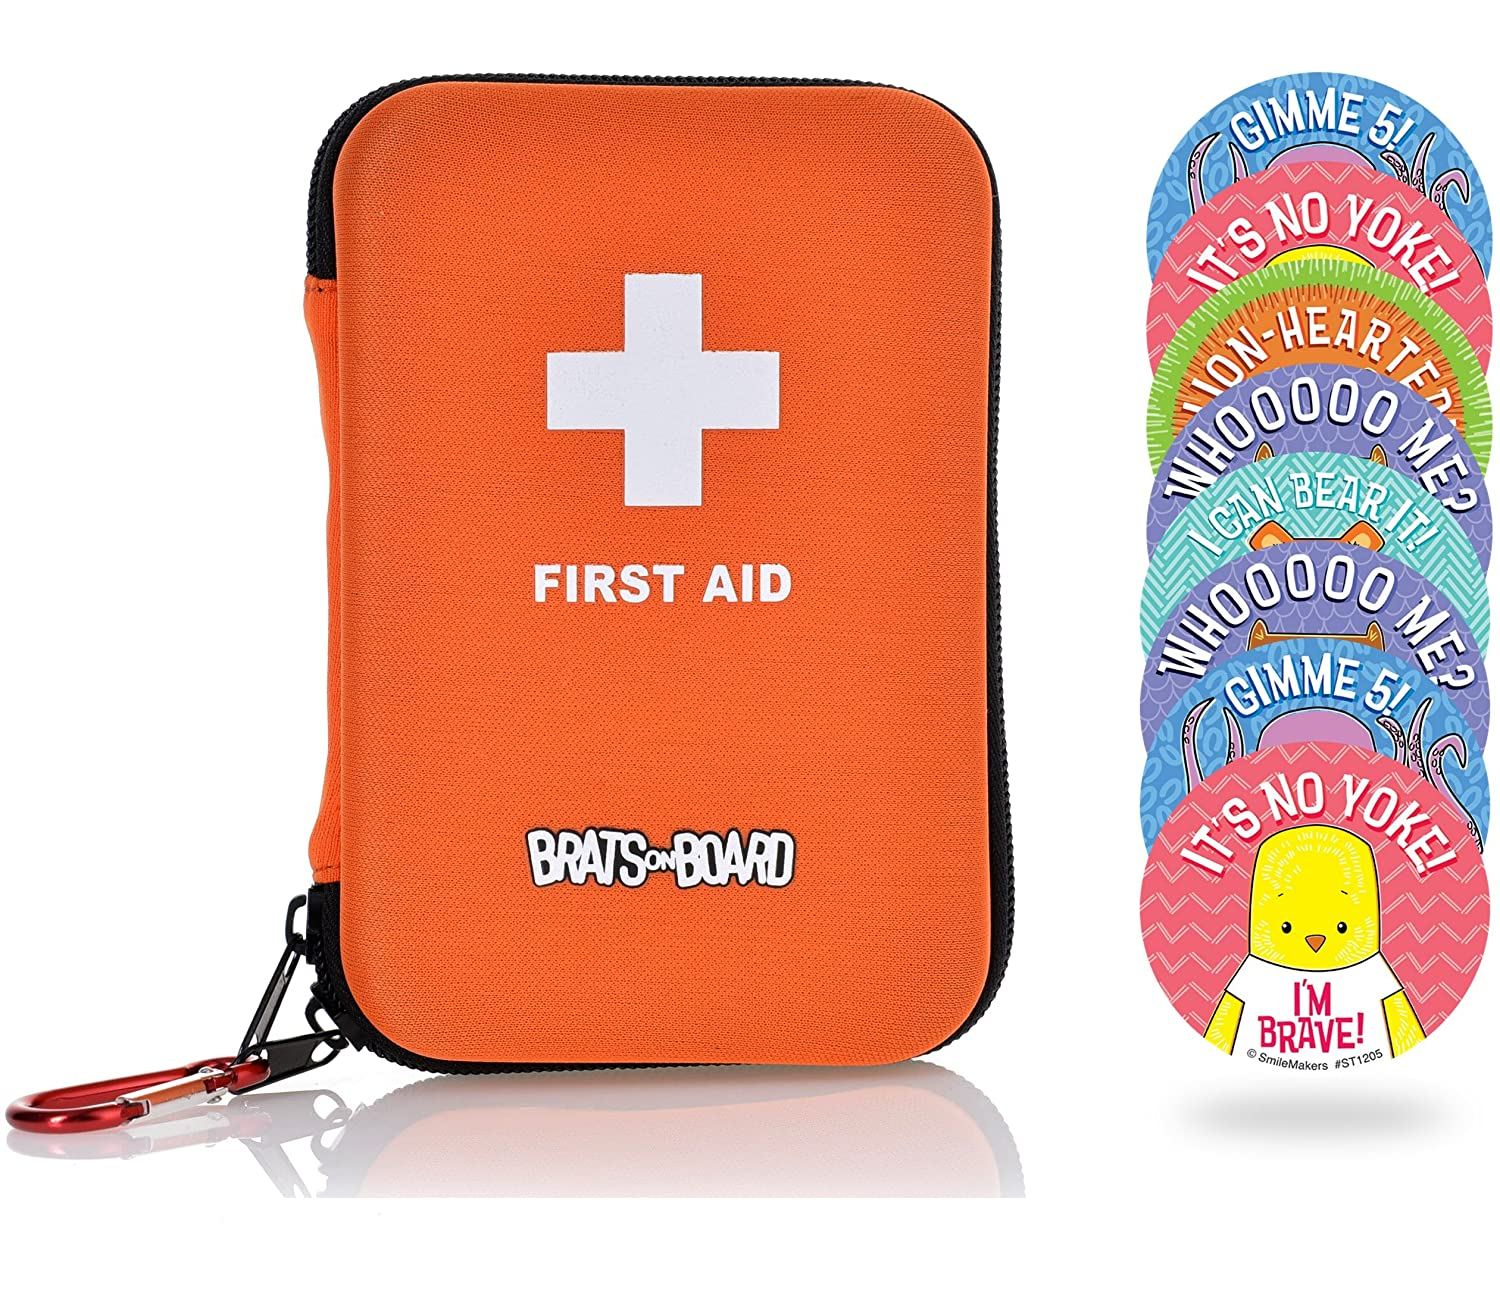 Compact Family Travel First Aid Kit 85 Piece Medical Supplies With Bonus Bravery Stickers For